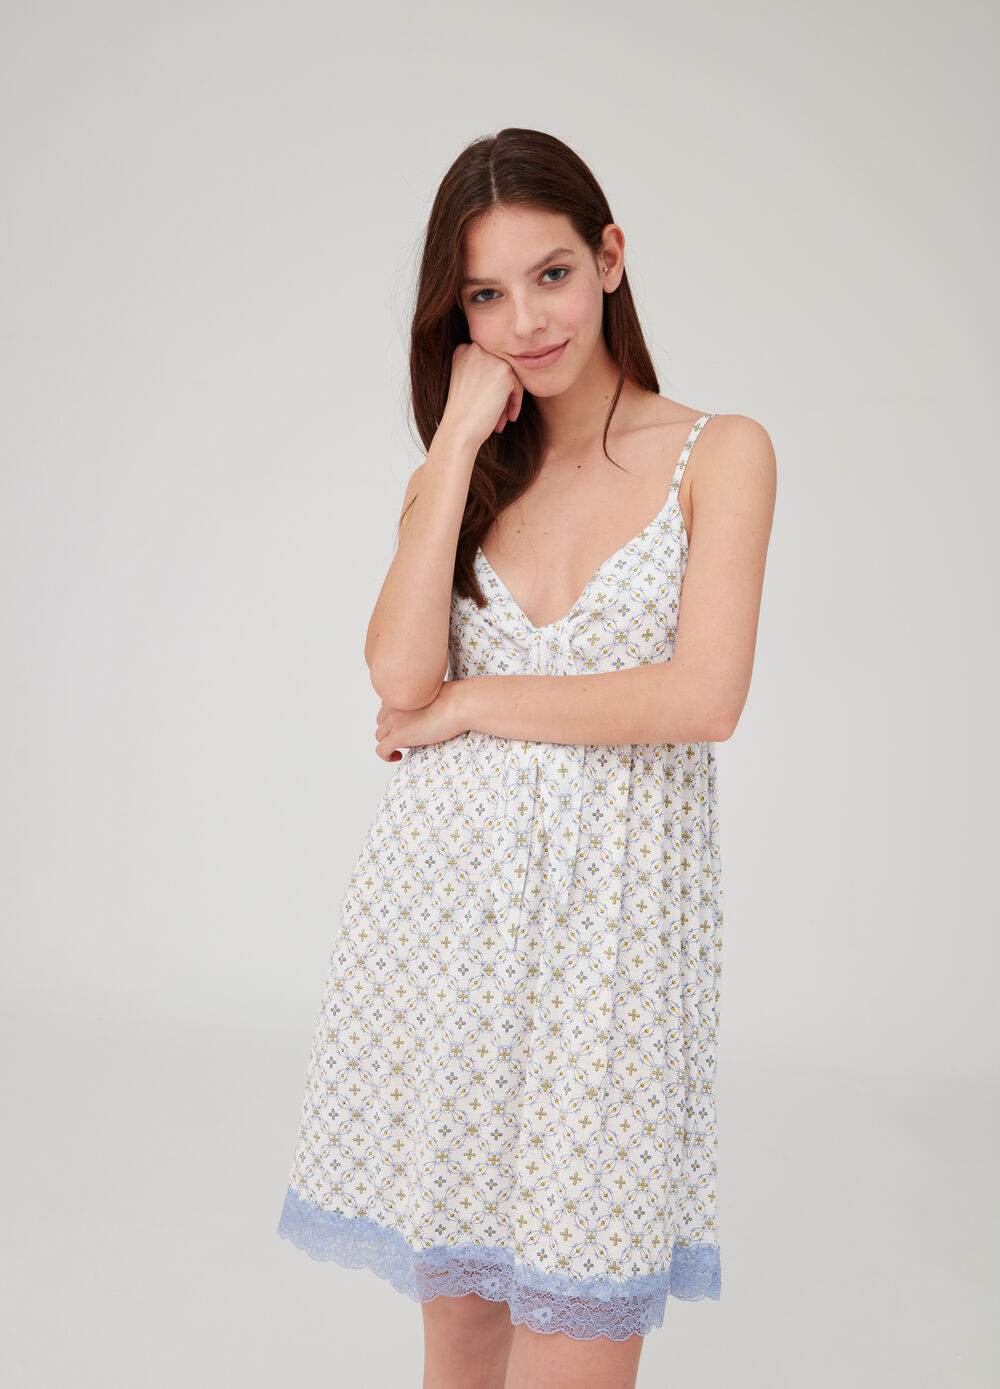 Nightshirt with knotted straps and lace